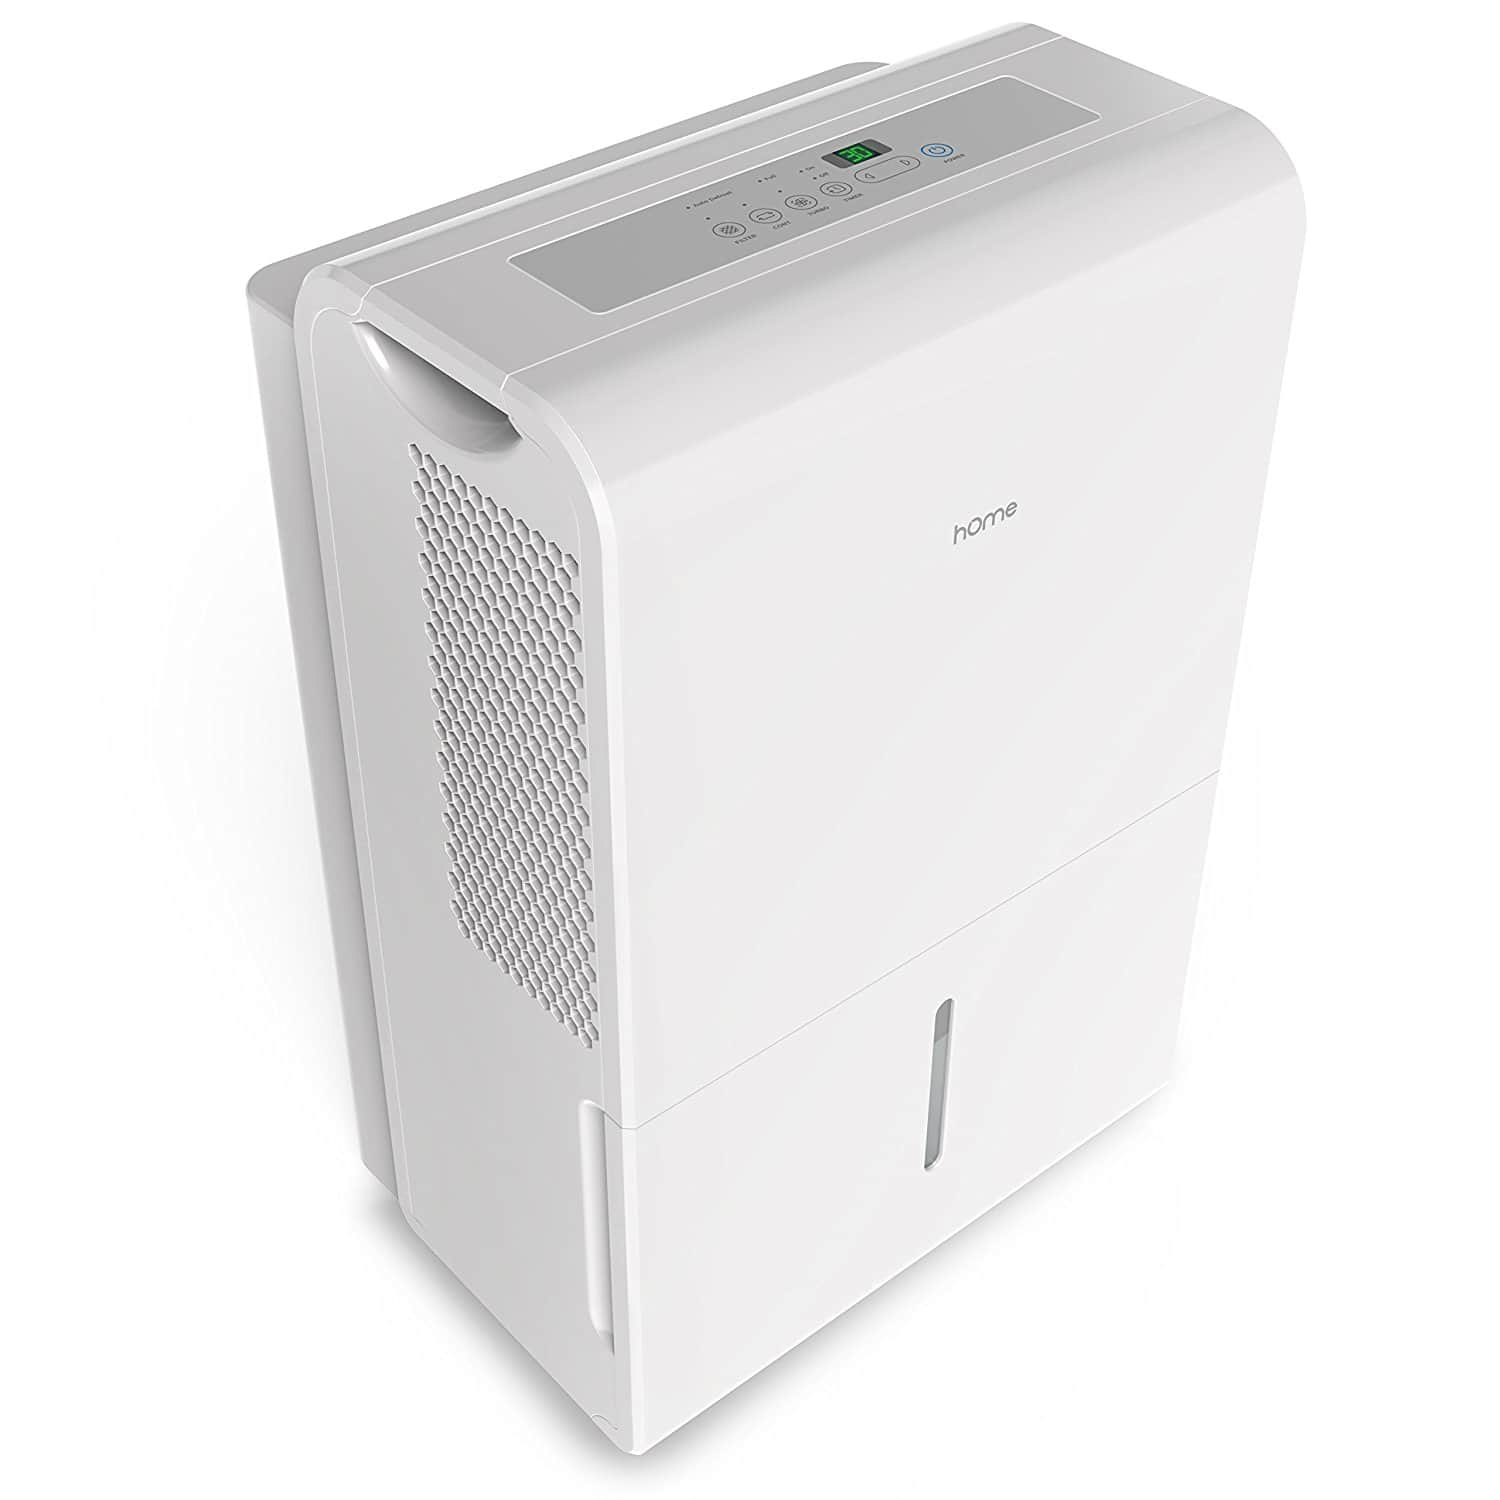 hOmeLabs 70-Pint Energy Star Dehumidifier $123.94 + Free Shipping